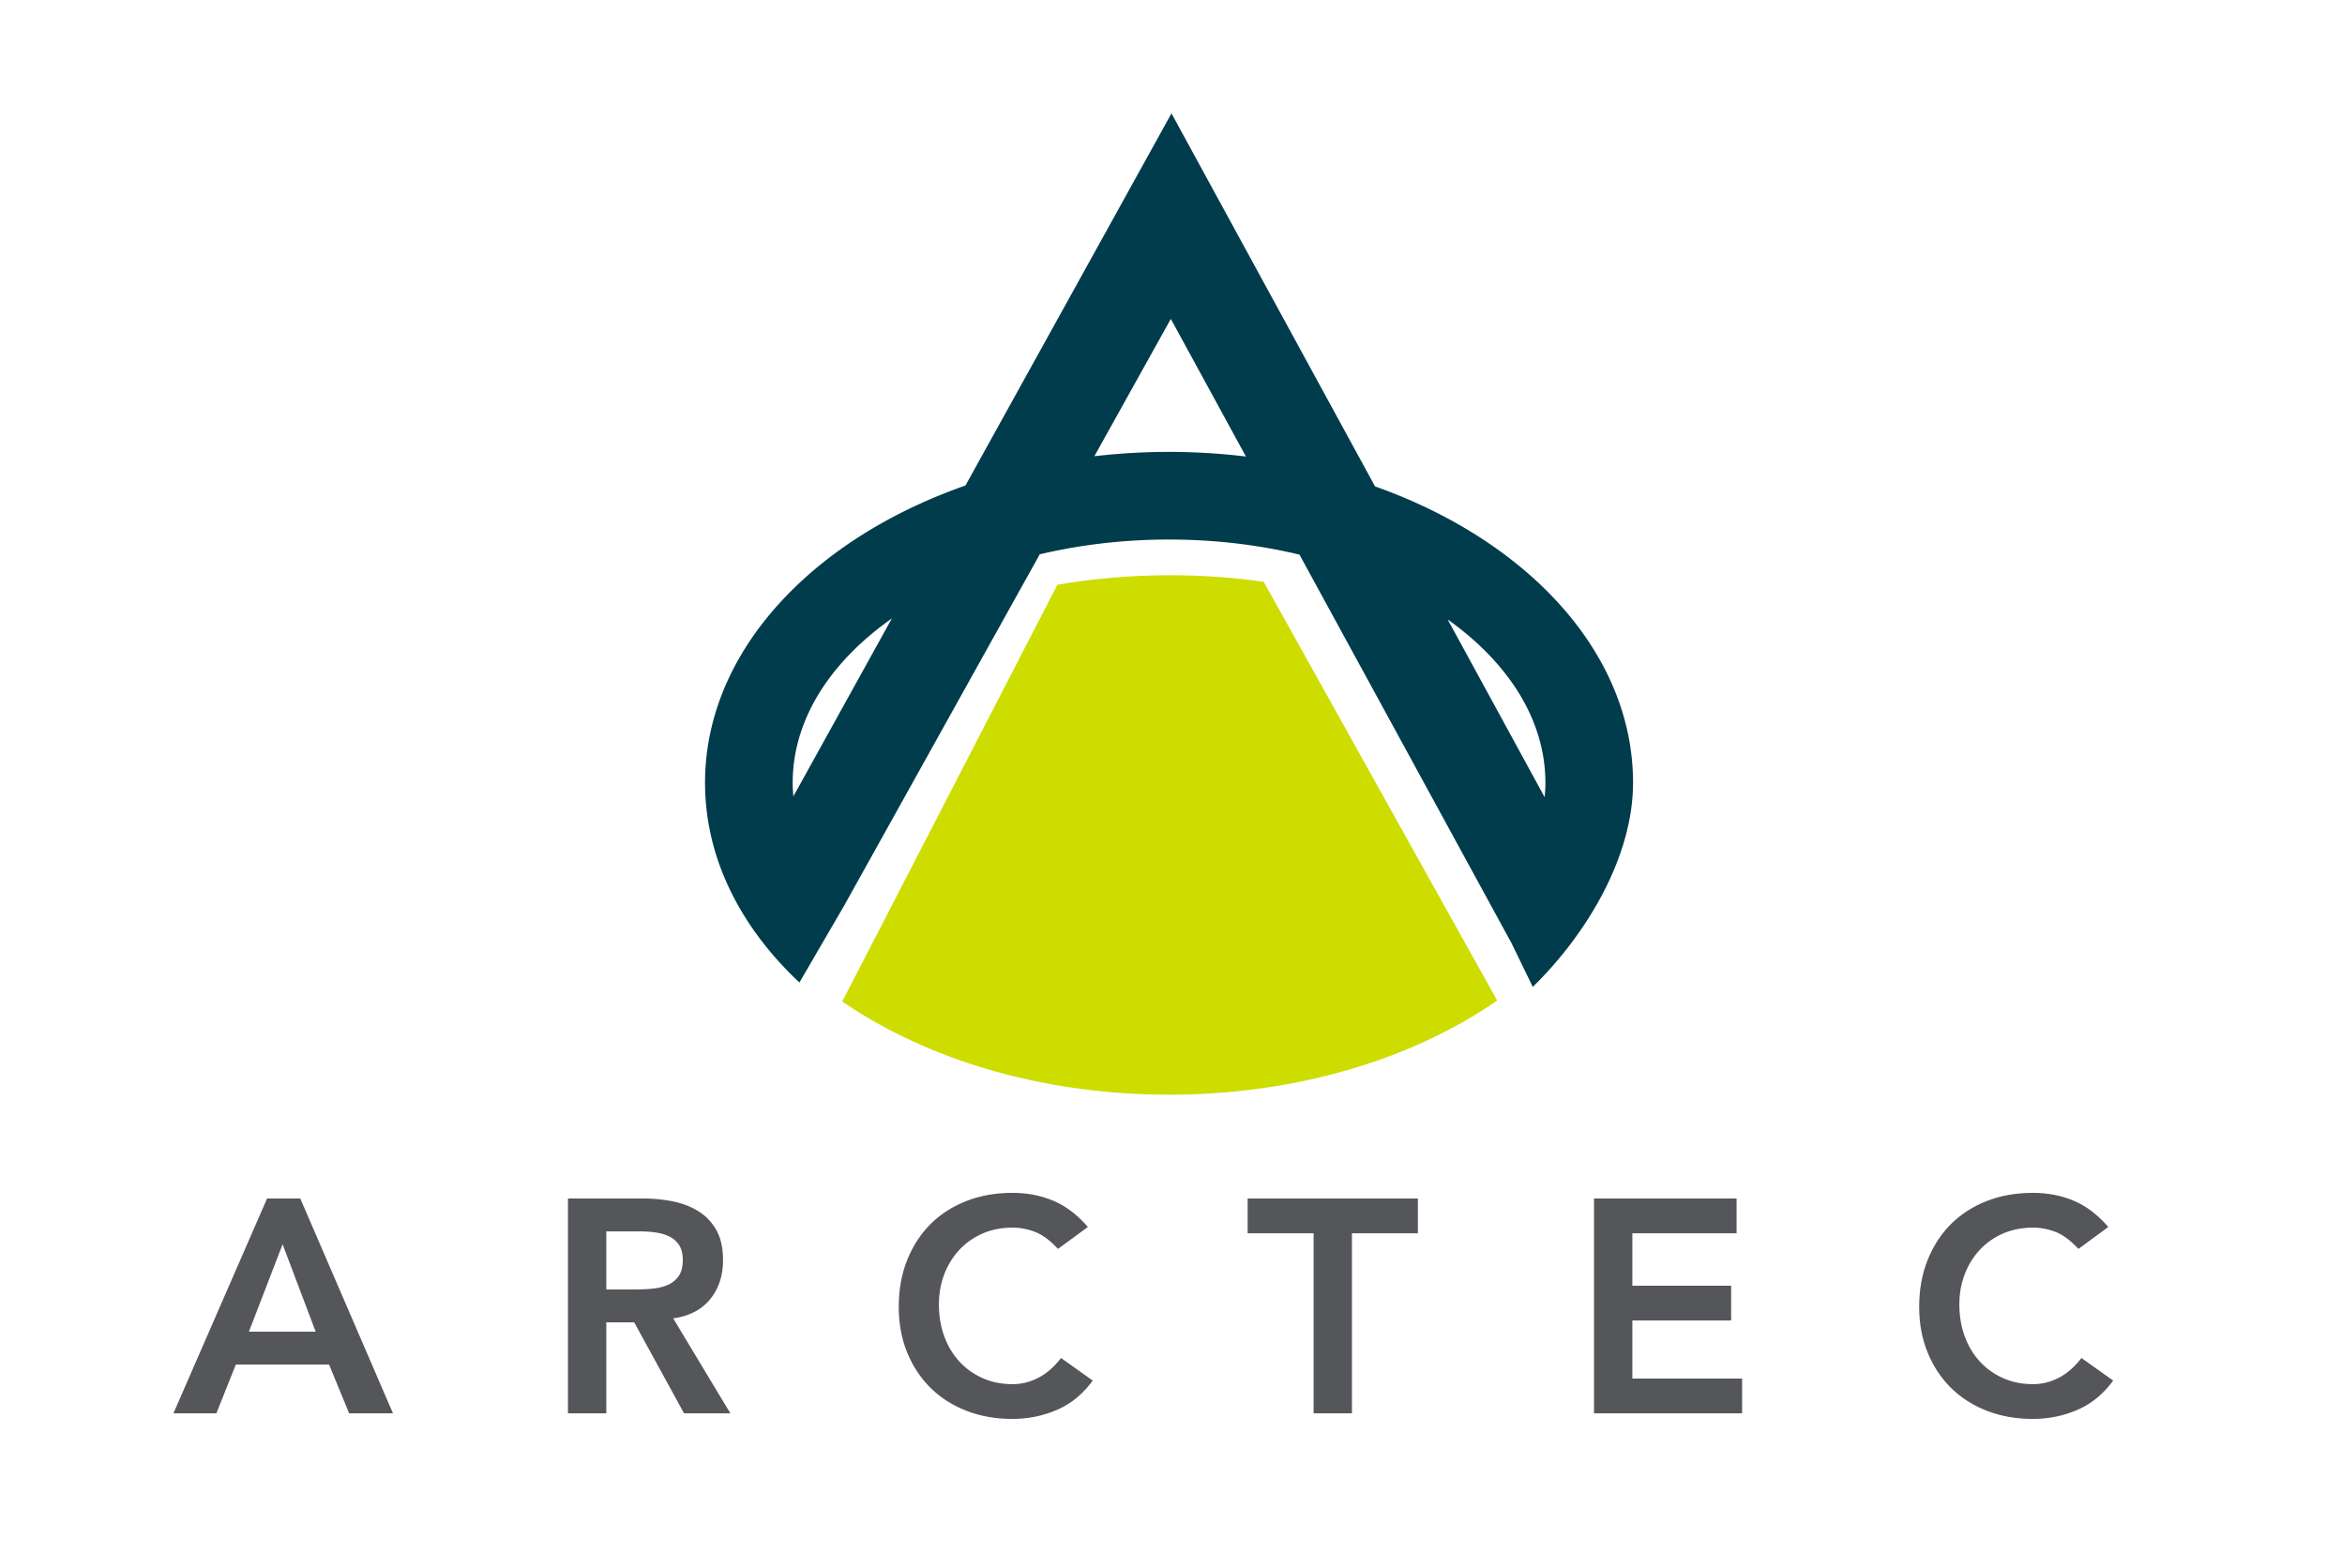 Arctec Group Limited